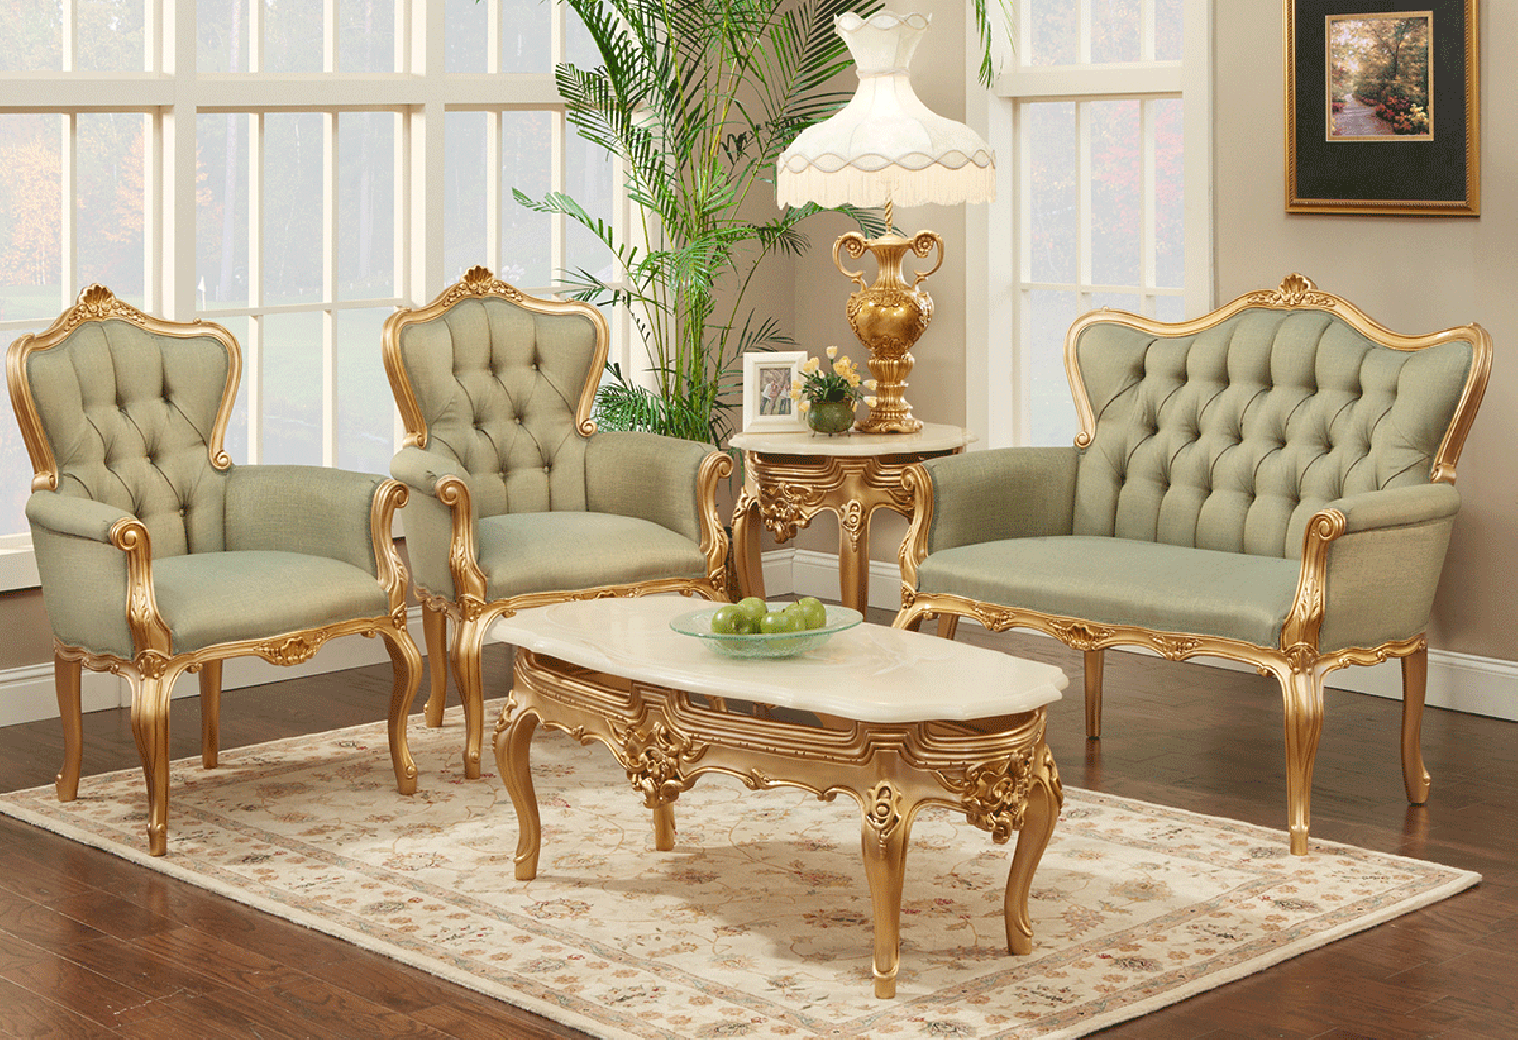 Where Can You Find Great Deals On Furniture- Online Or Offline?